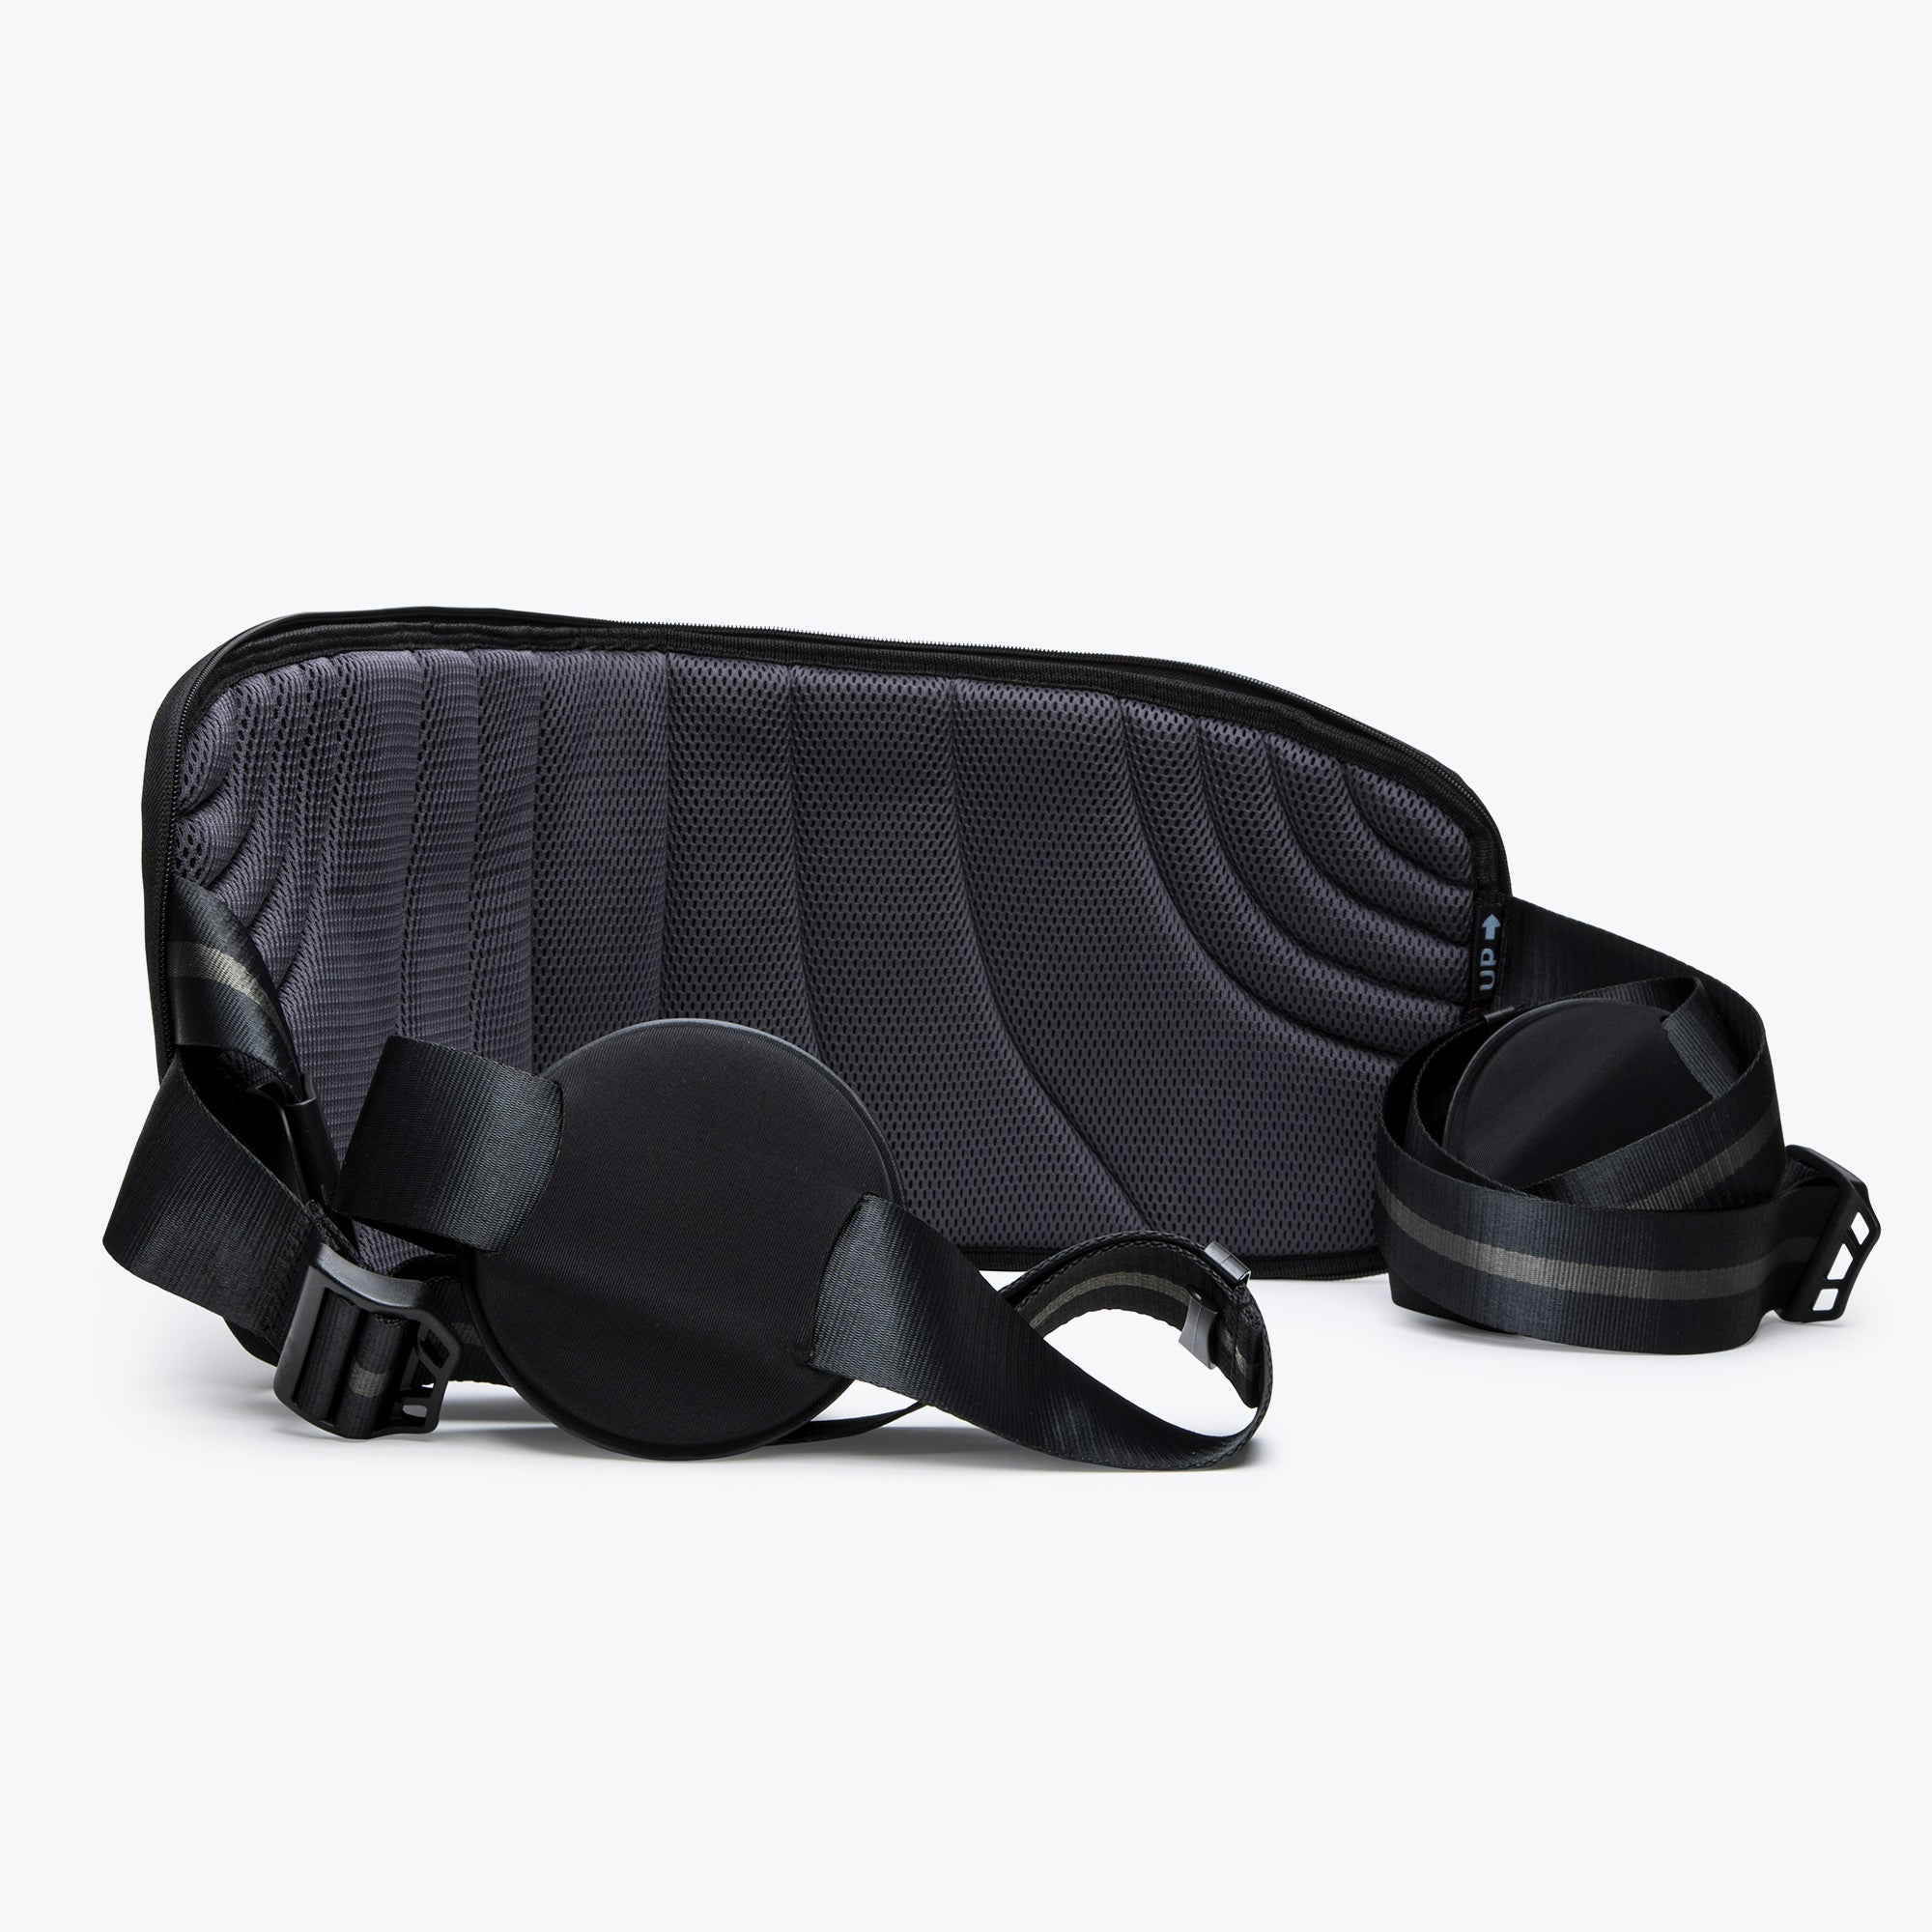 Gaiam BetterBack? Posture Support